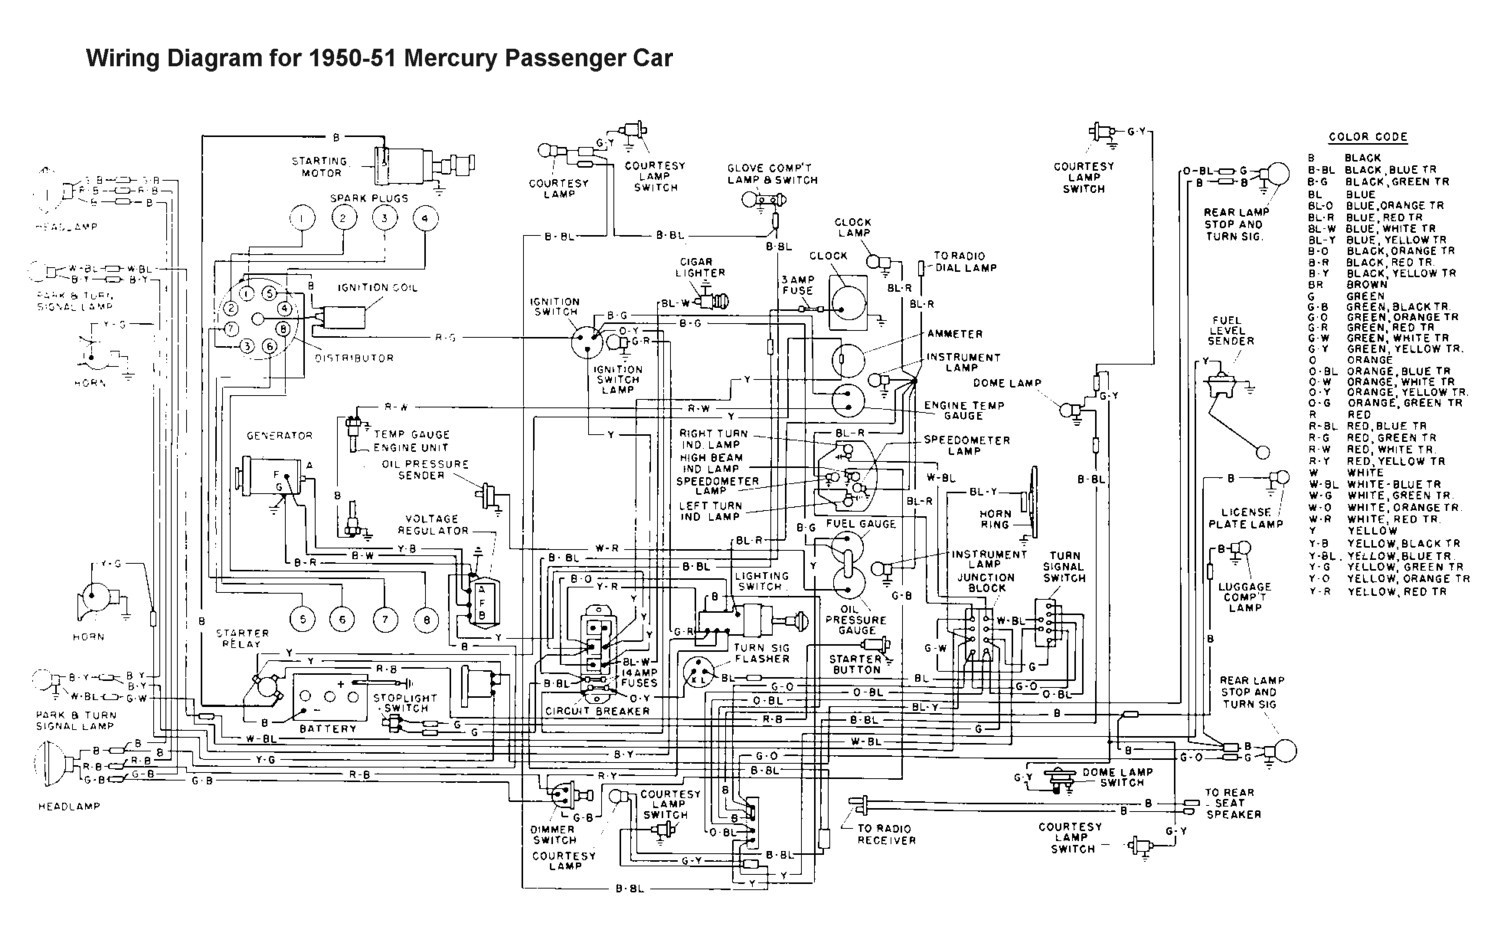 12 Volt Wiring Diagram Parking Light Free Image Wiring Diagram